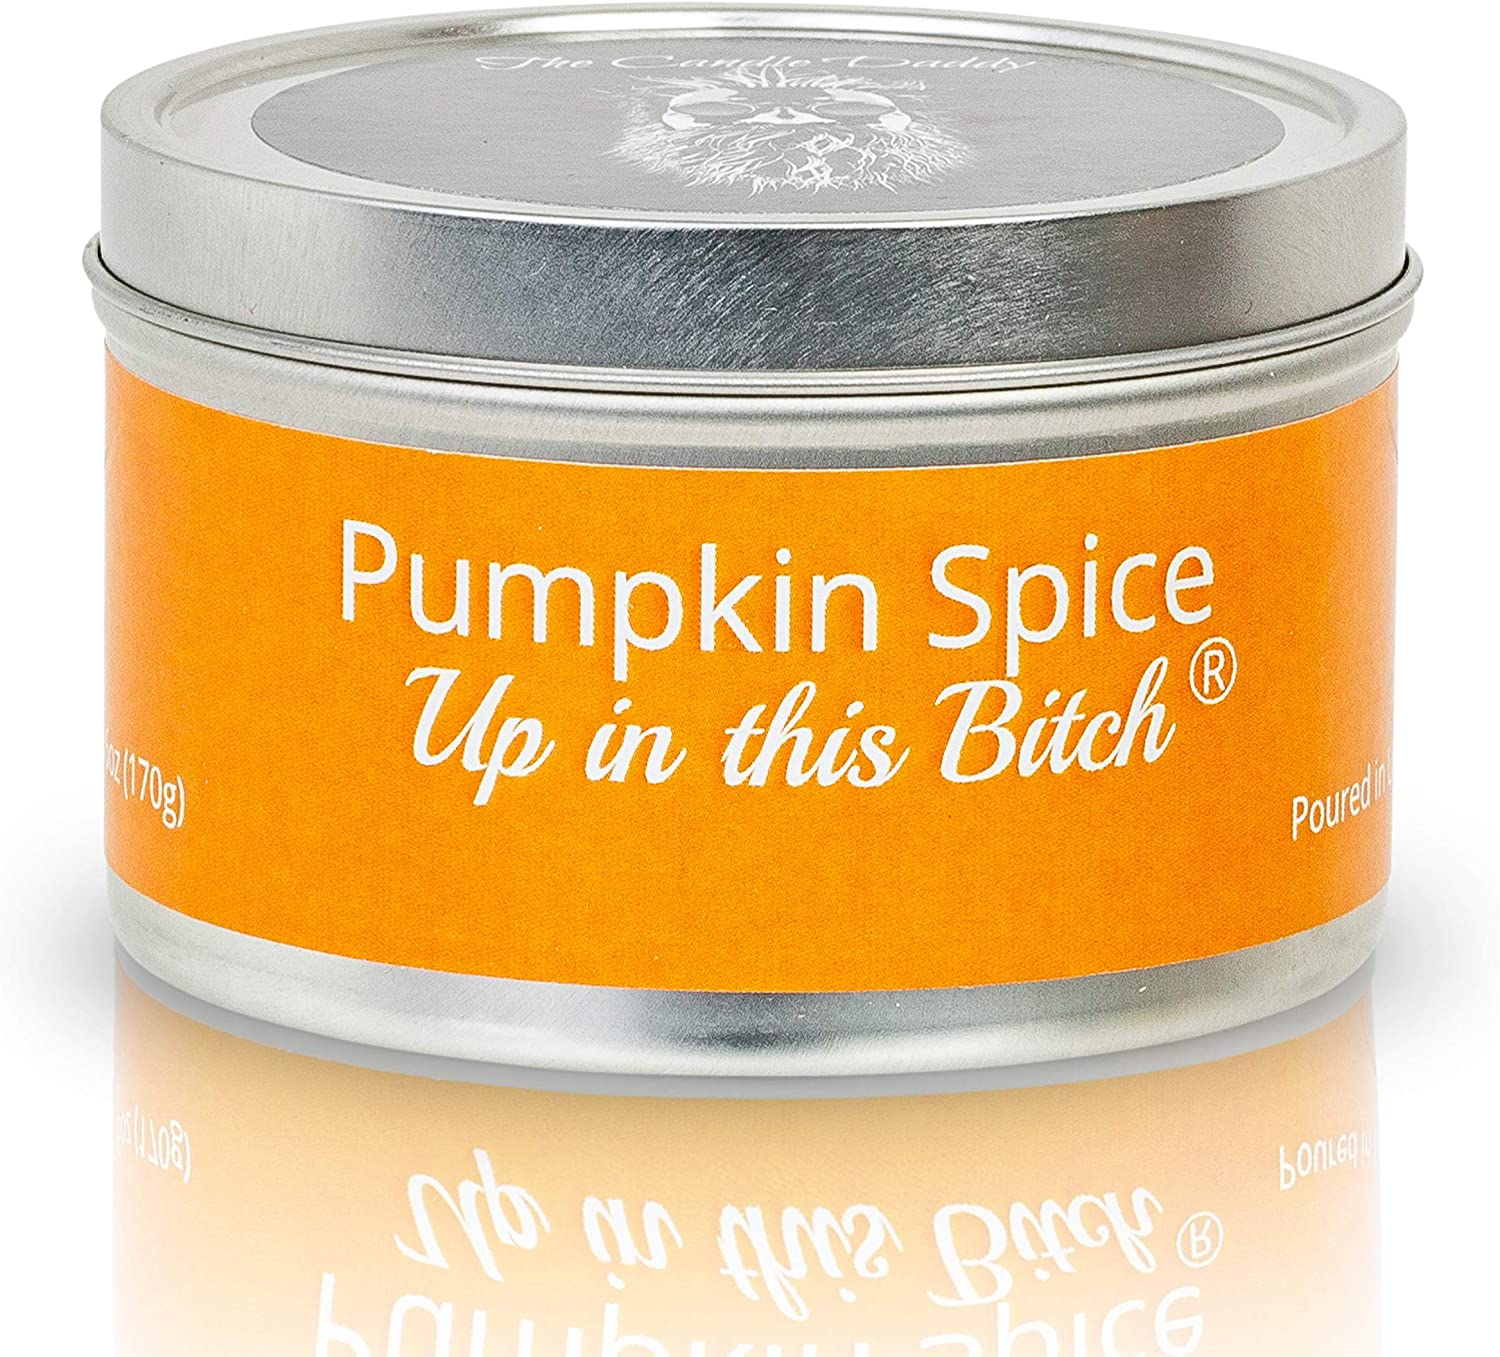 Pumpkin 5 ☆ very popular Spice Up Free shipping on posting reviews in This oz 6 Scented Bitch Metal